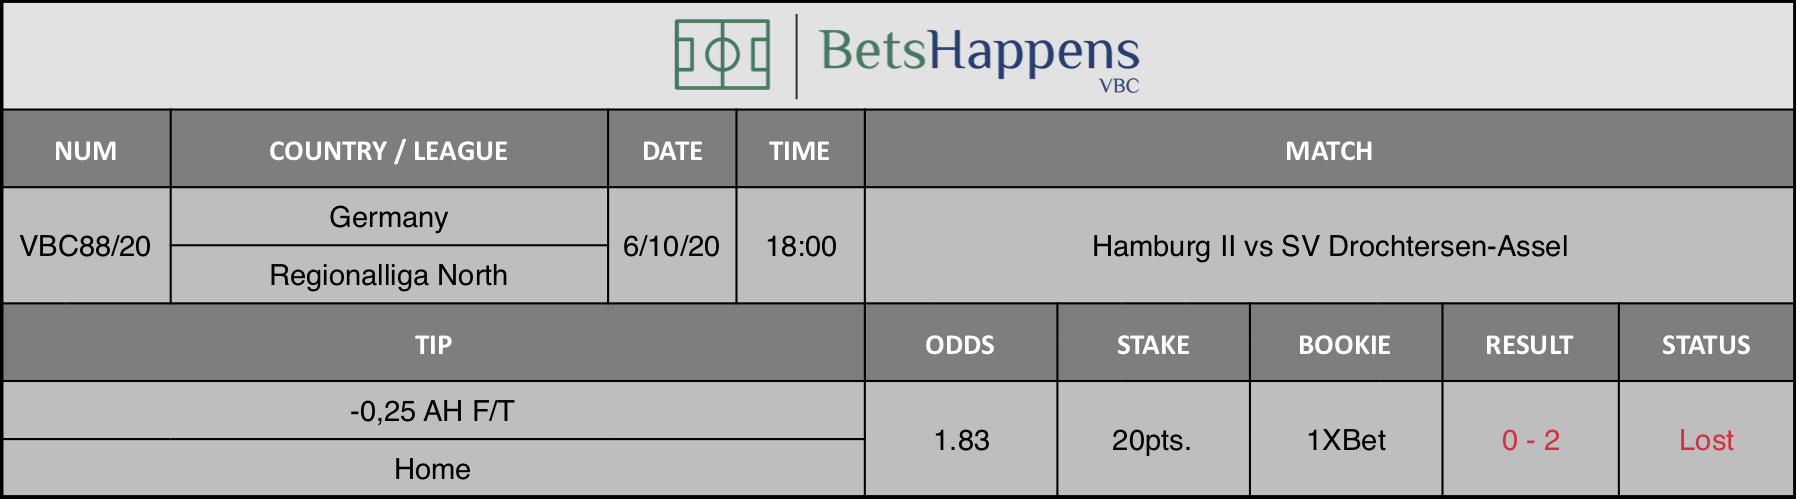 Results of our advice for the Hamburg II vs SV Drochtersen-Assel match in which -0.25 AH F / T Home is recommended.